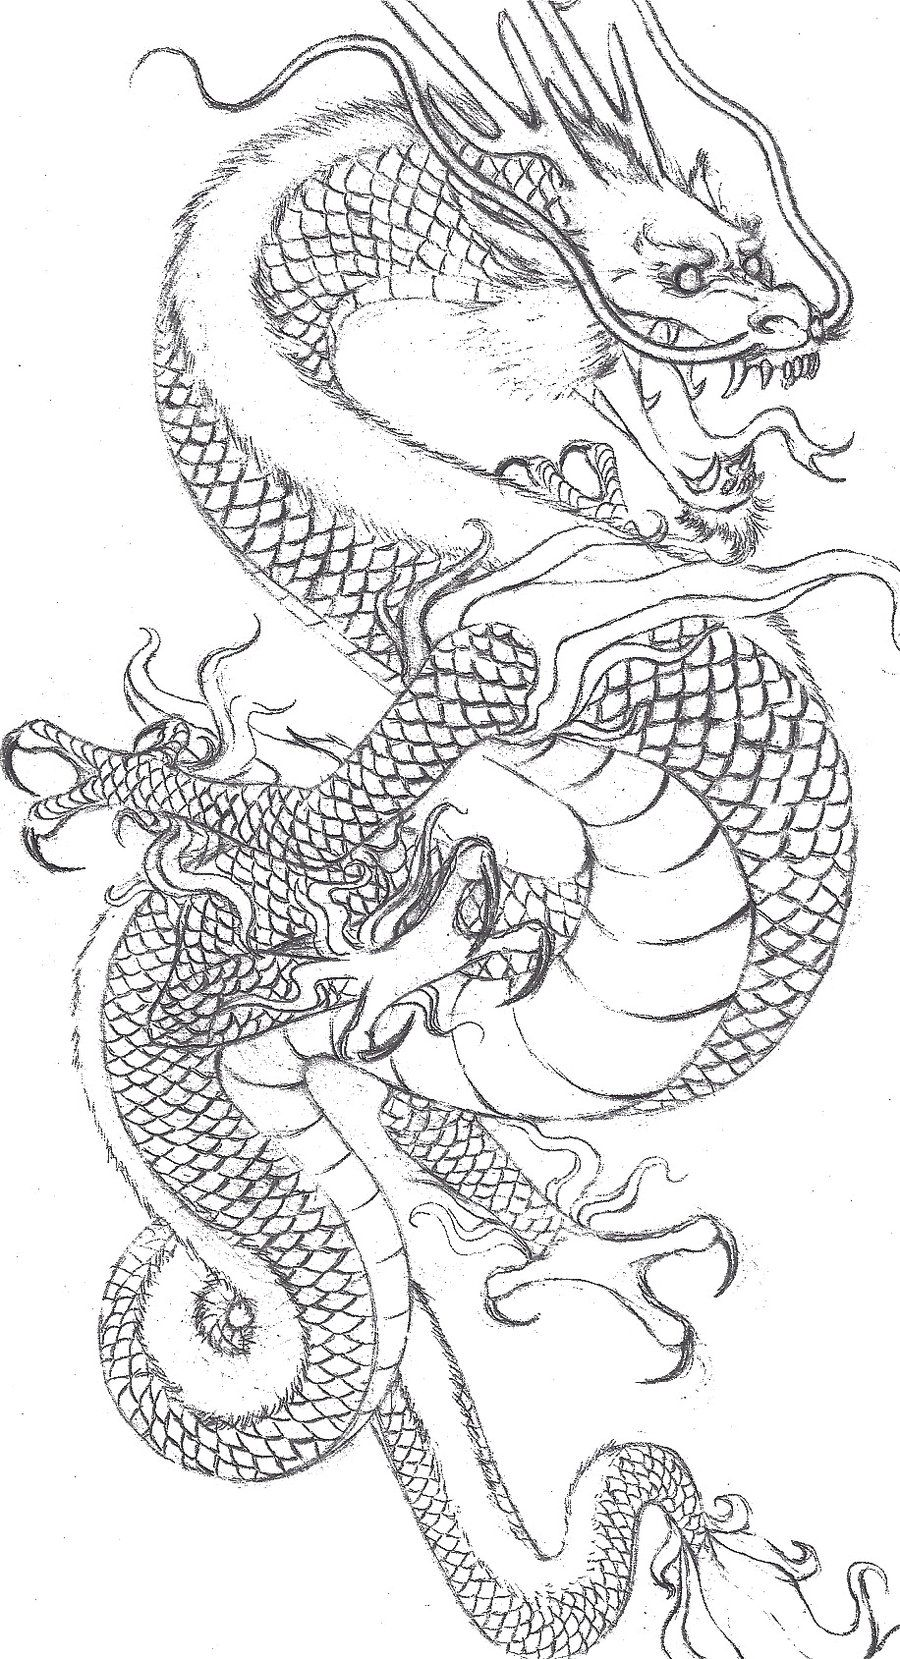 Gallery For gt Drawings Of Japanese Dragons